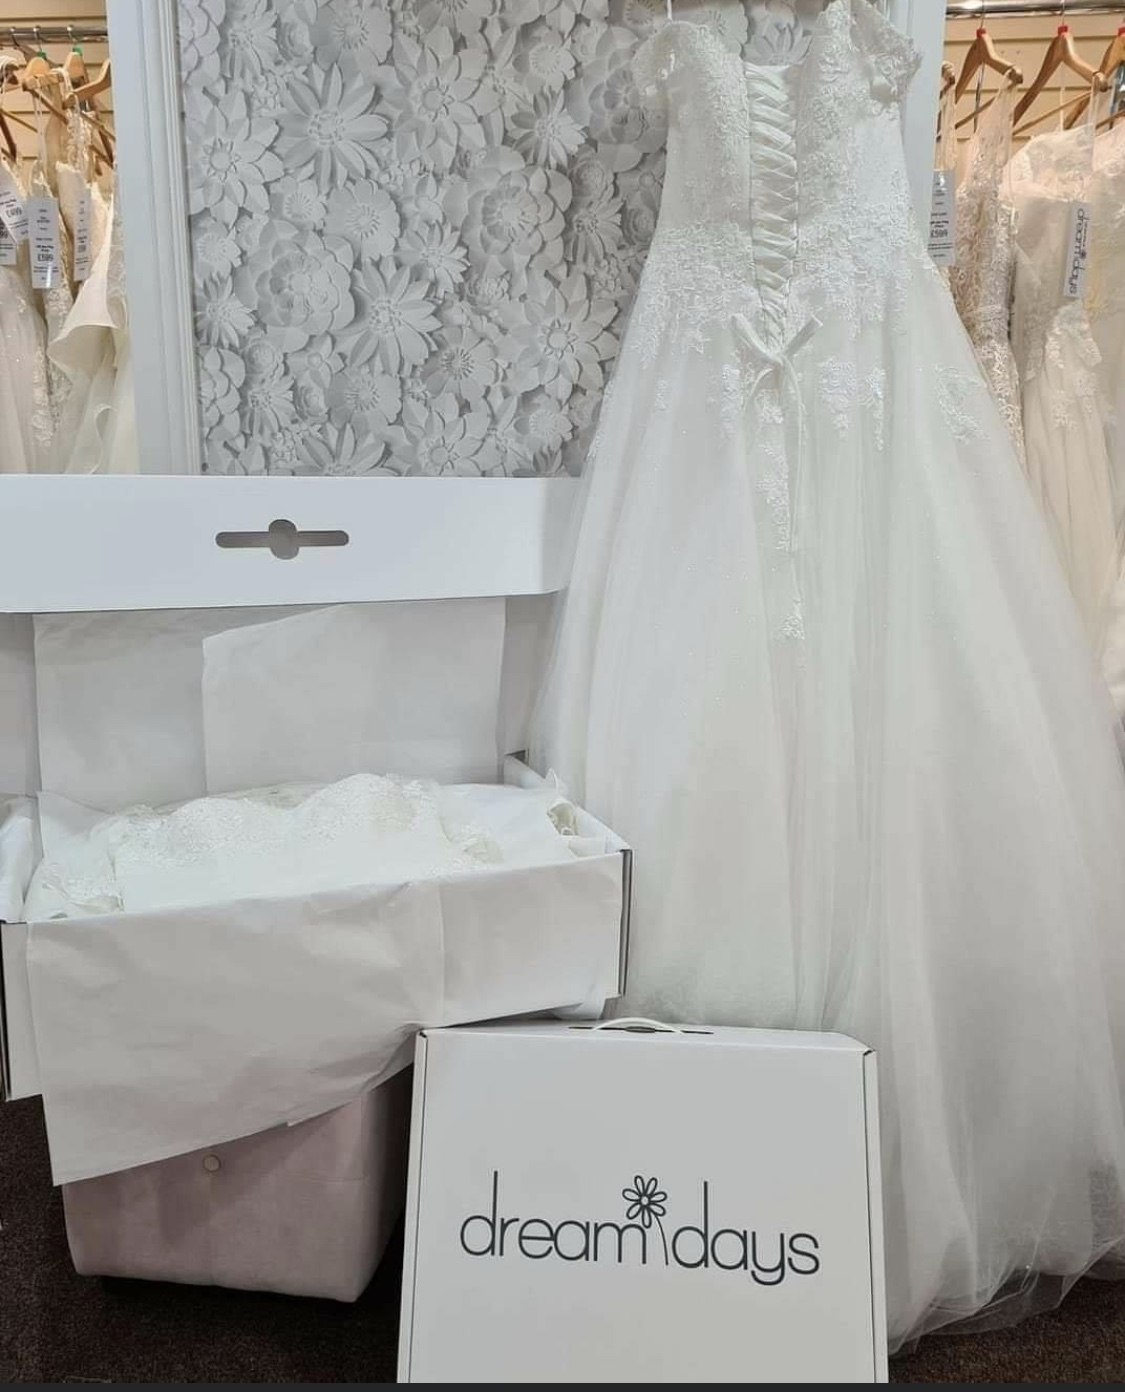 Wedding gown which has been cleaned ready to be boxed into a wedding carton.